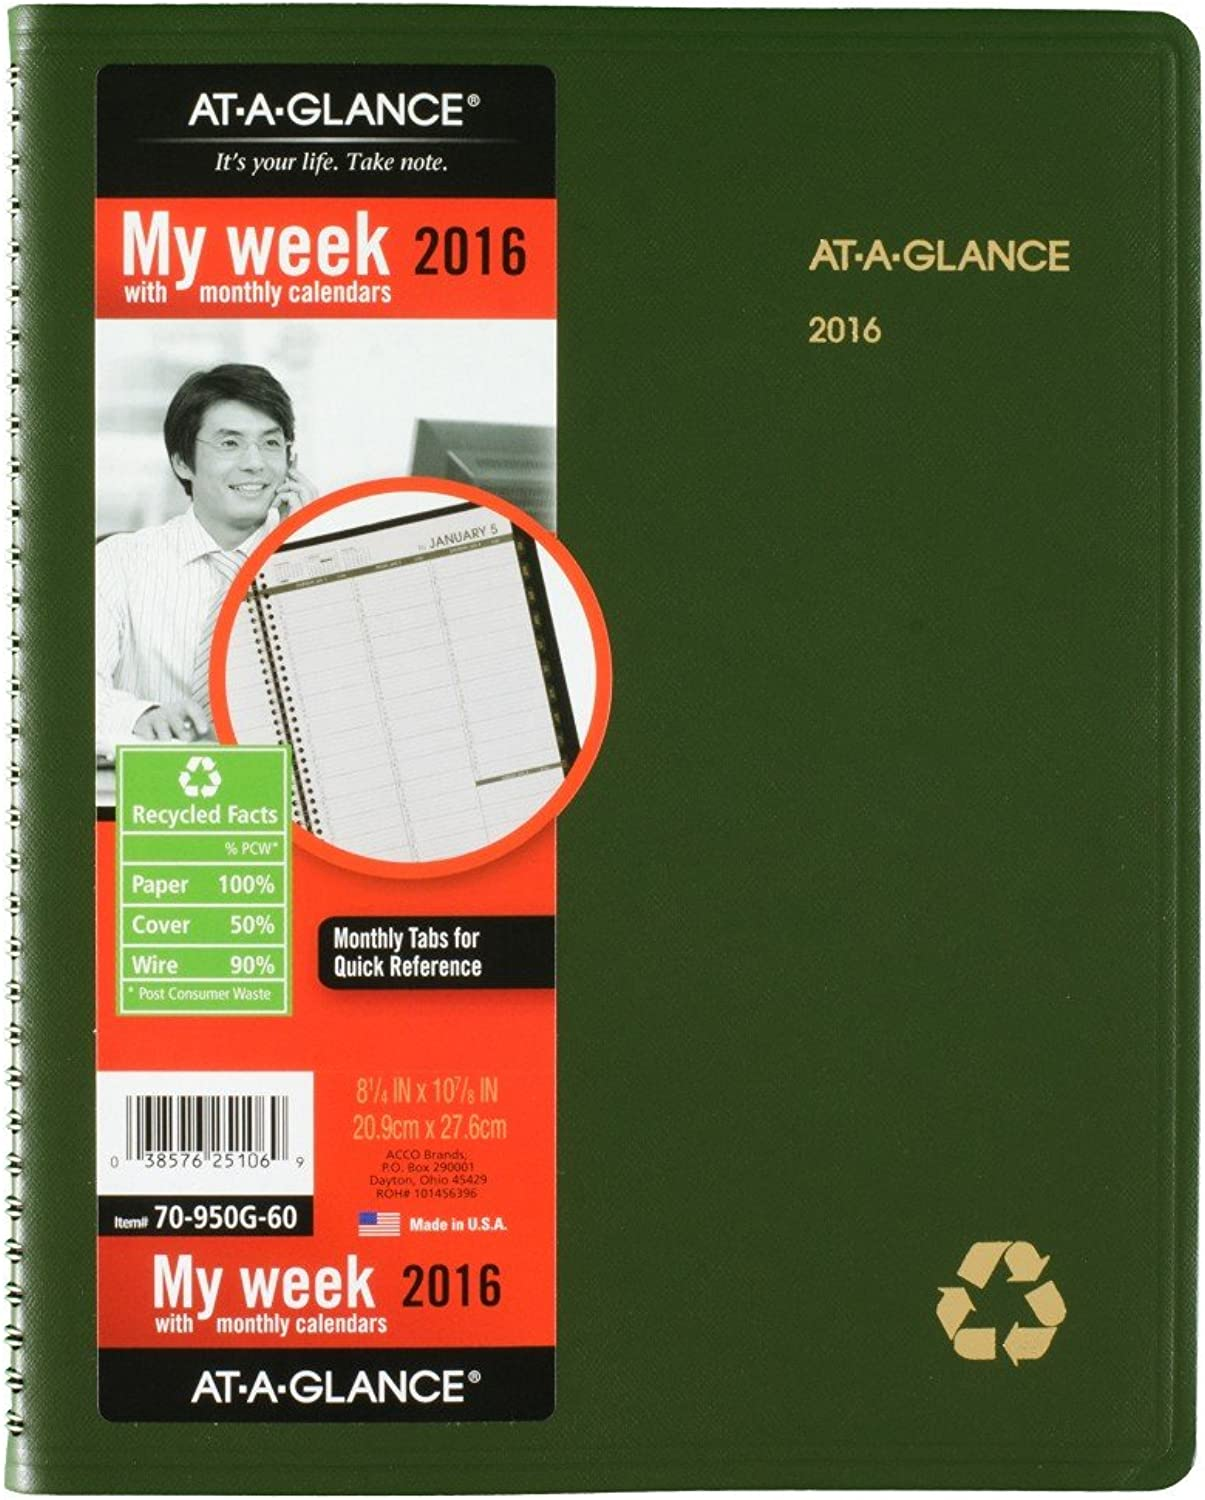 AT-A-GLANCE Weekly   Monthly Appointment Book Book Book   Planner 2016, Recycled, 8.25 x 10.88 Inches, Grün (70-950G-60) by At-A-Glance B00WWVQ9VY | Mittlere Kosten  bfa922